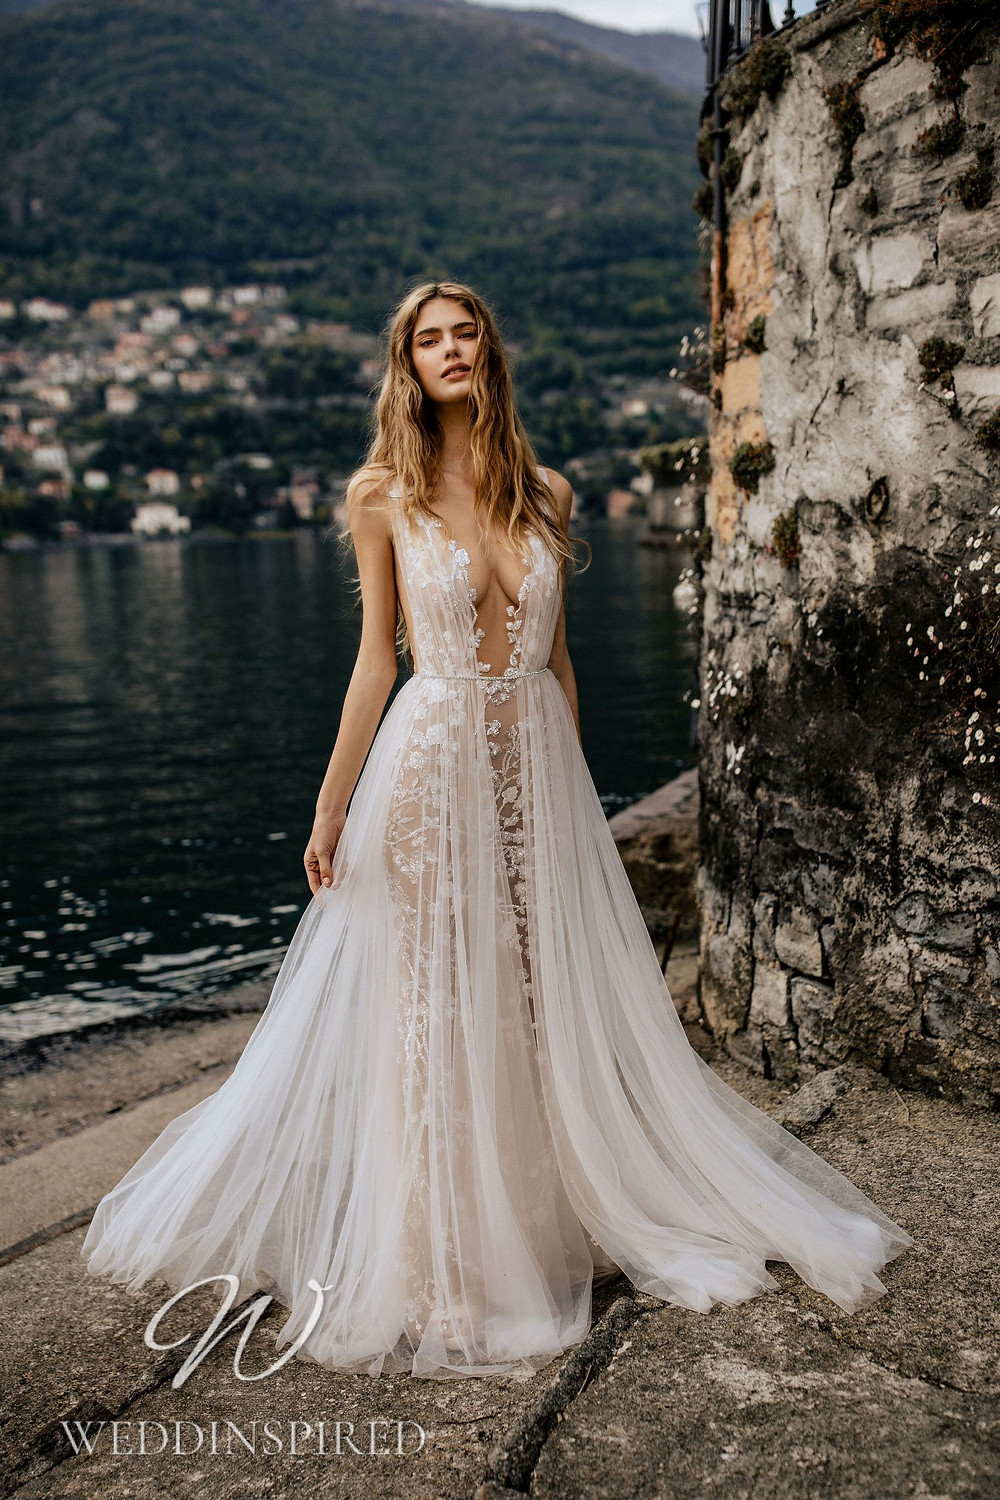 A Berta 2022 blush tulle and lace A-line wedding dress